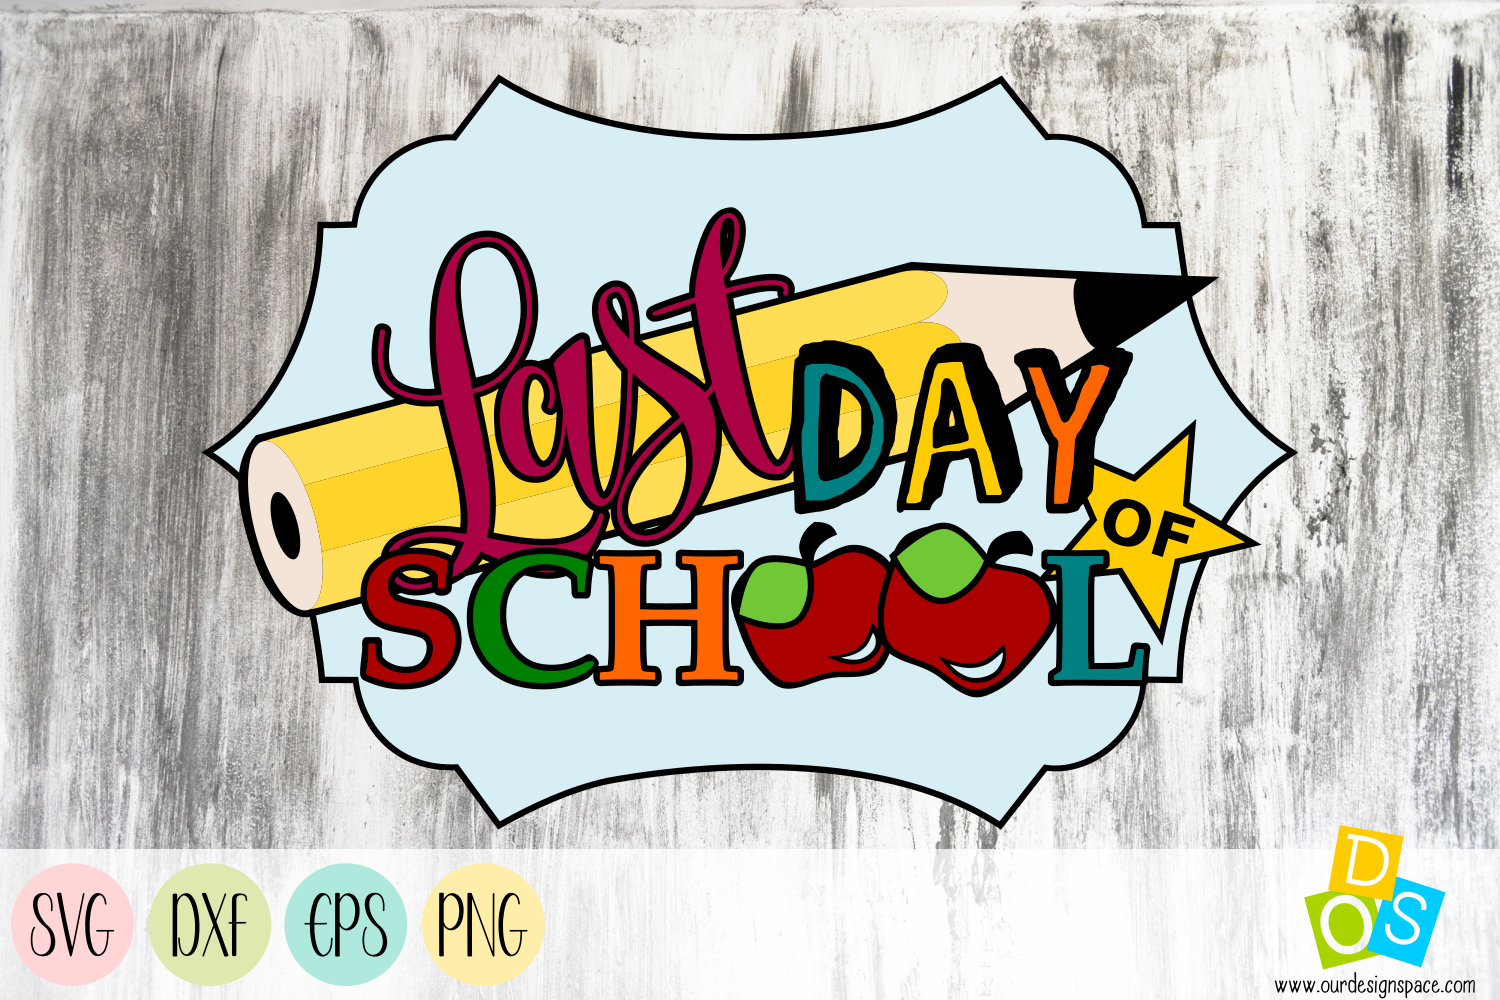 Last Day Of School SVG, DXF, EPS, and PNG file example image 1